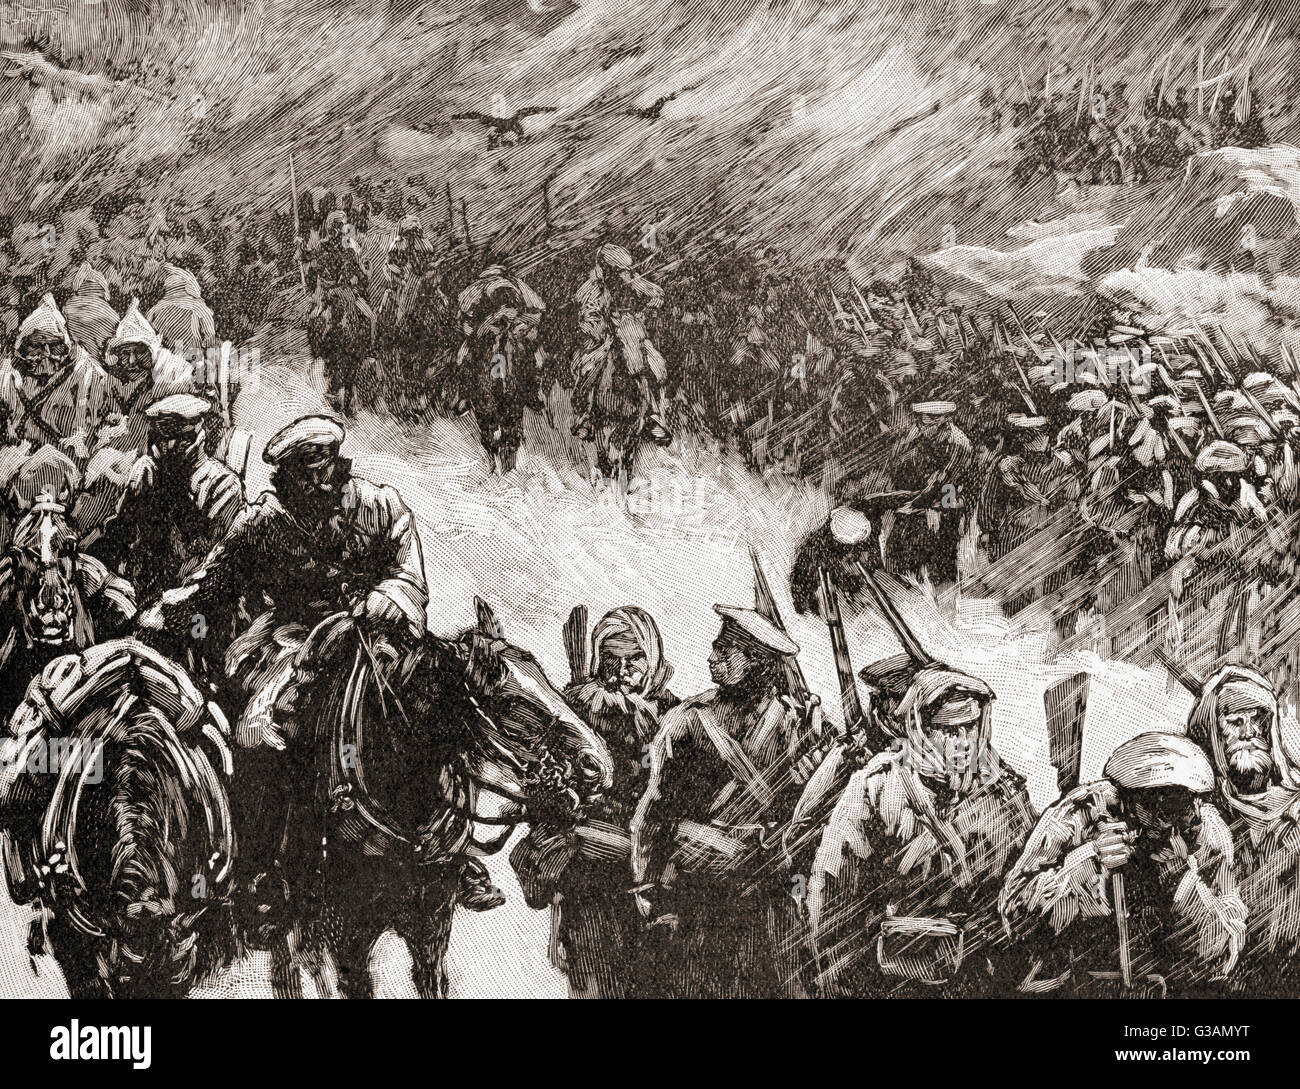 The Russian army under the leadership of Count Iosif Vladimirovich Romeyko-Gurko advance across the Balkans during - Stock Image